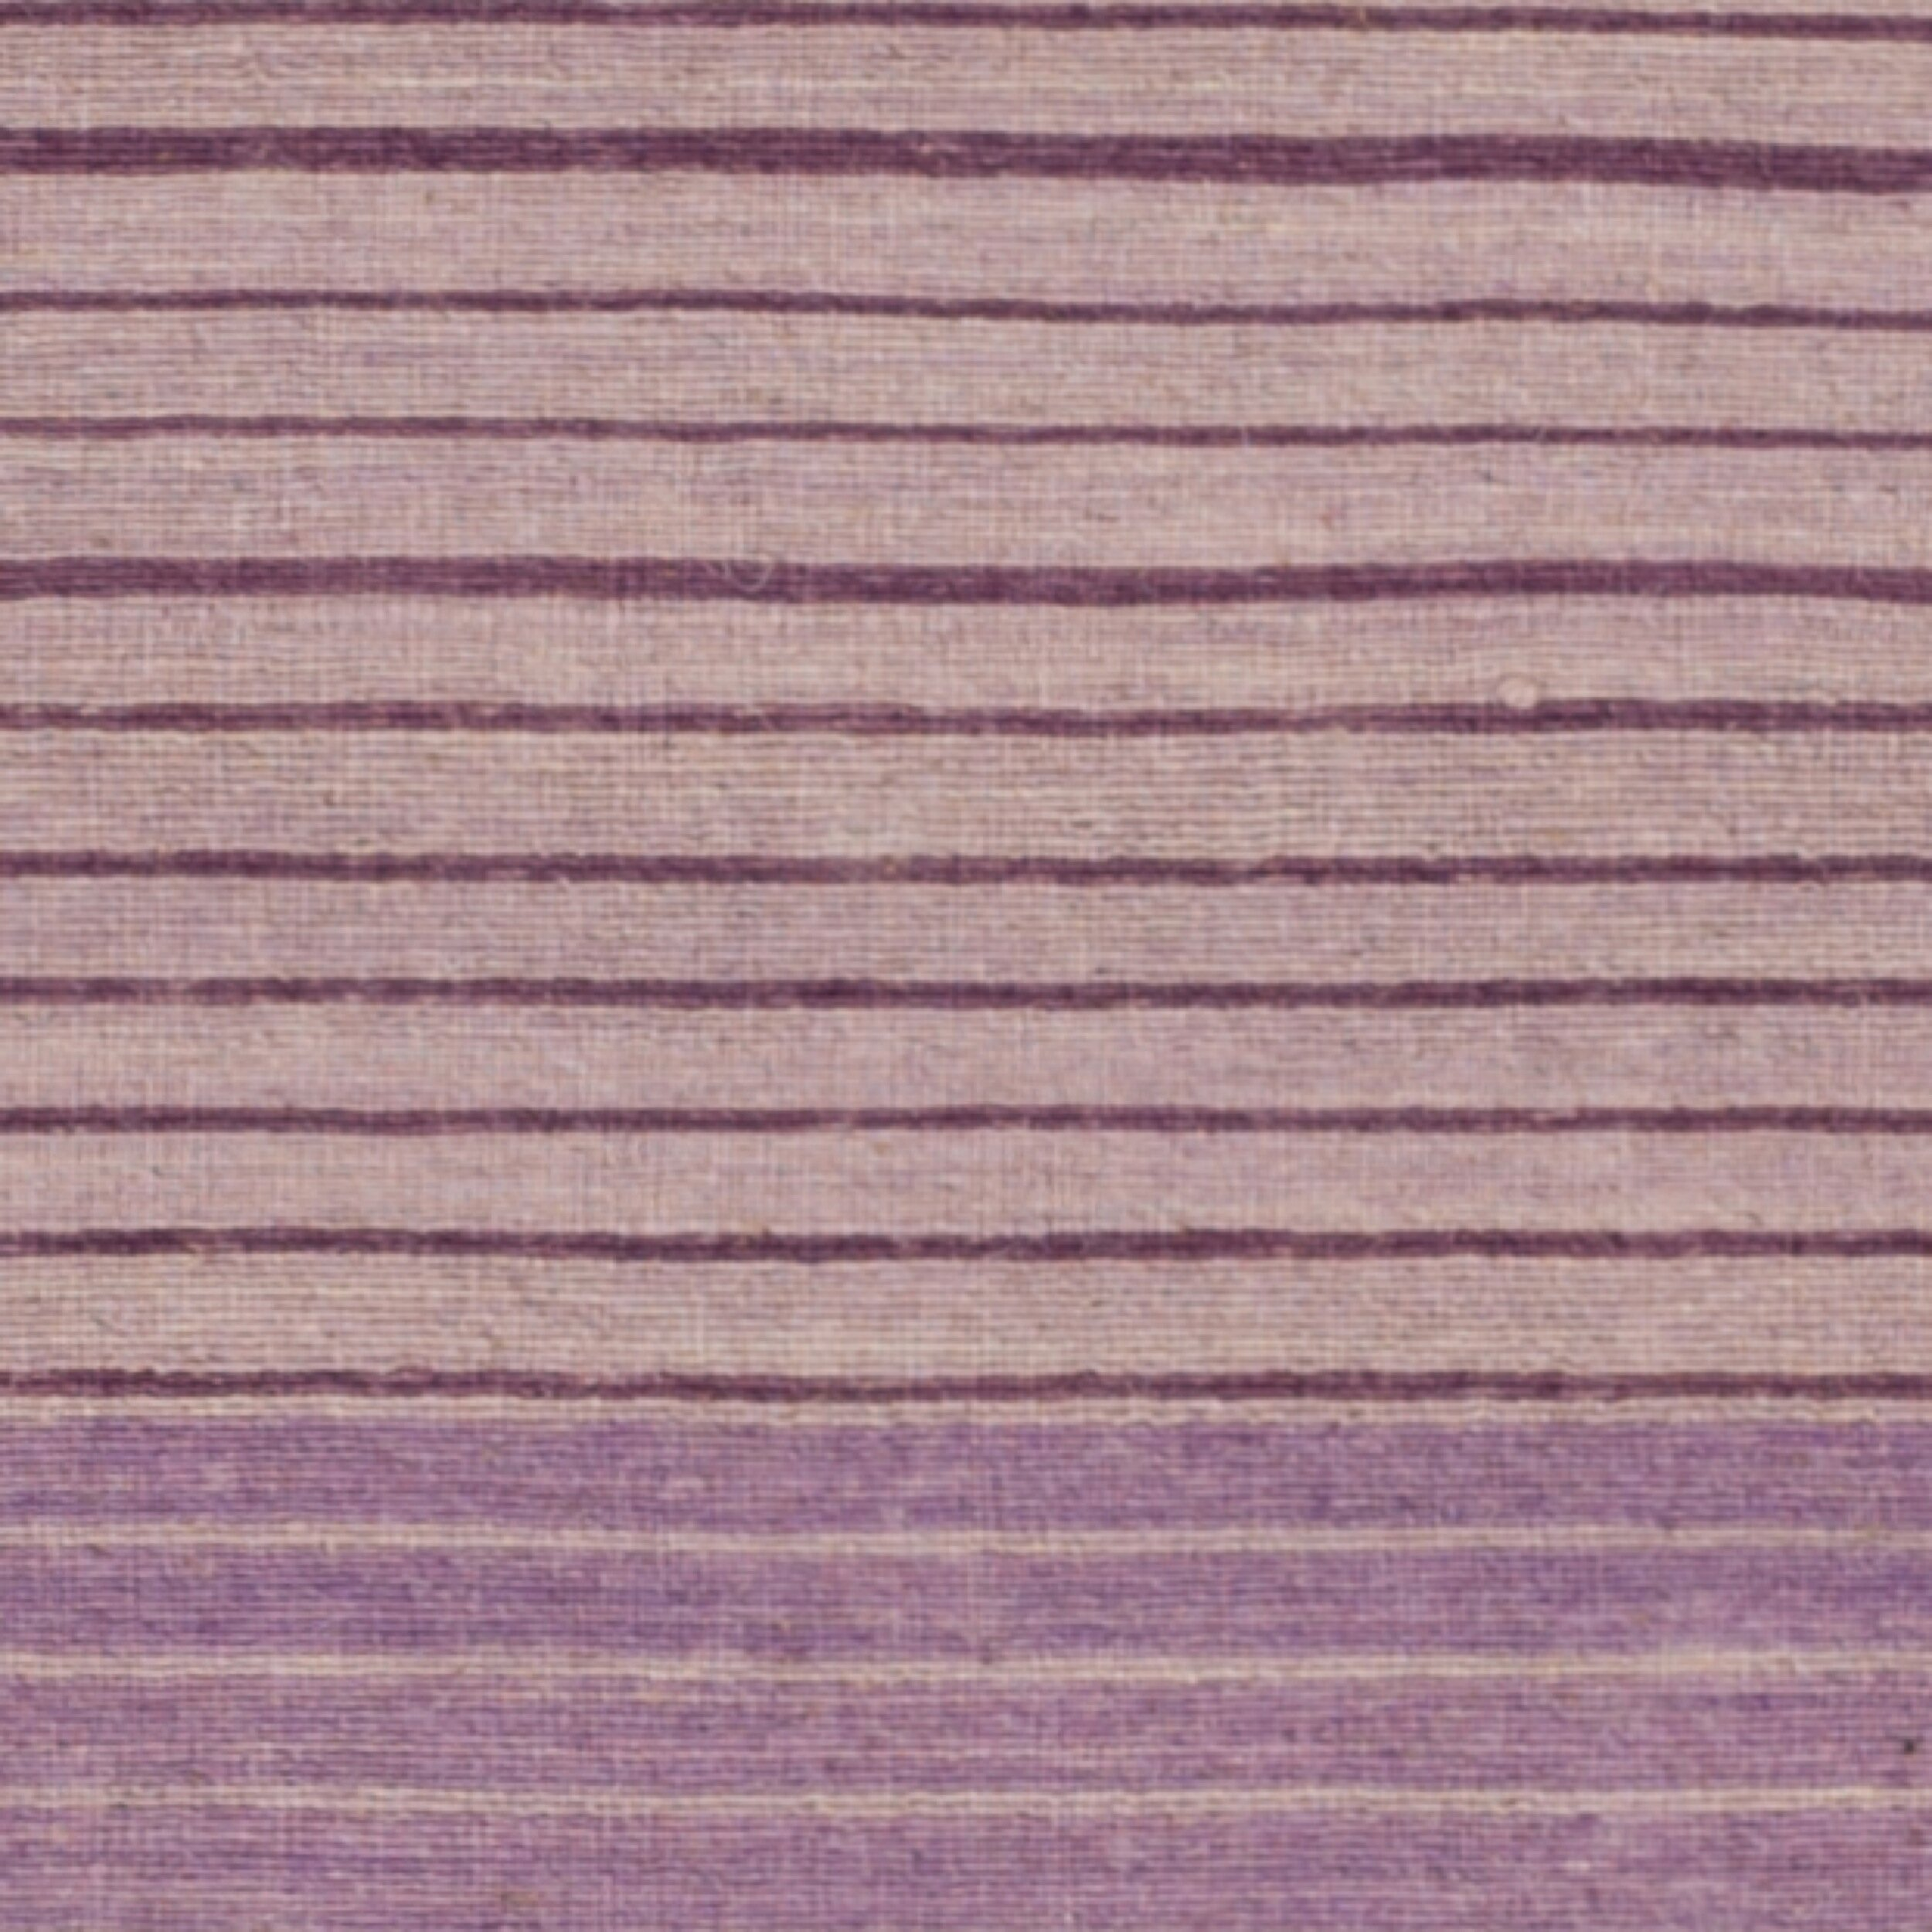 Xl Purple Rug: Safavieh Marbella Lilac Striped Contemporary Purple Area